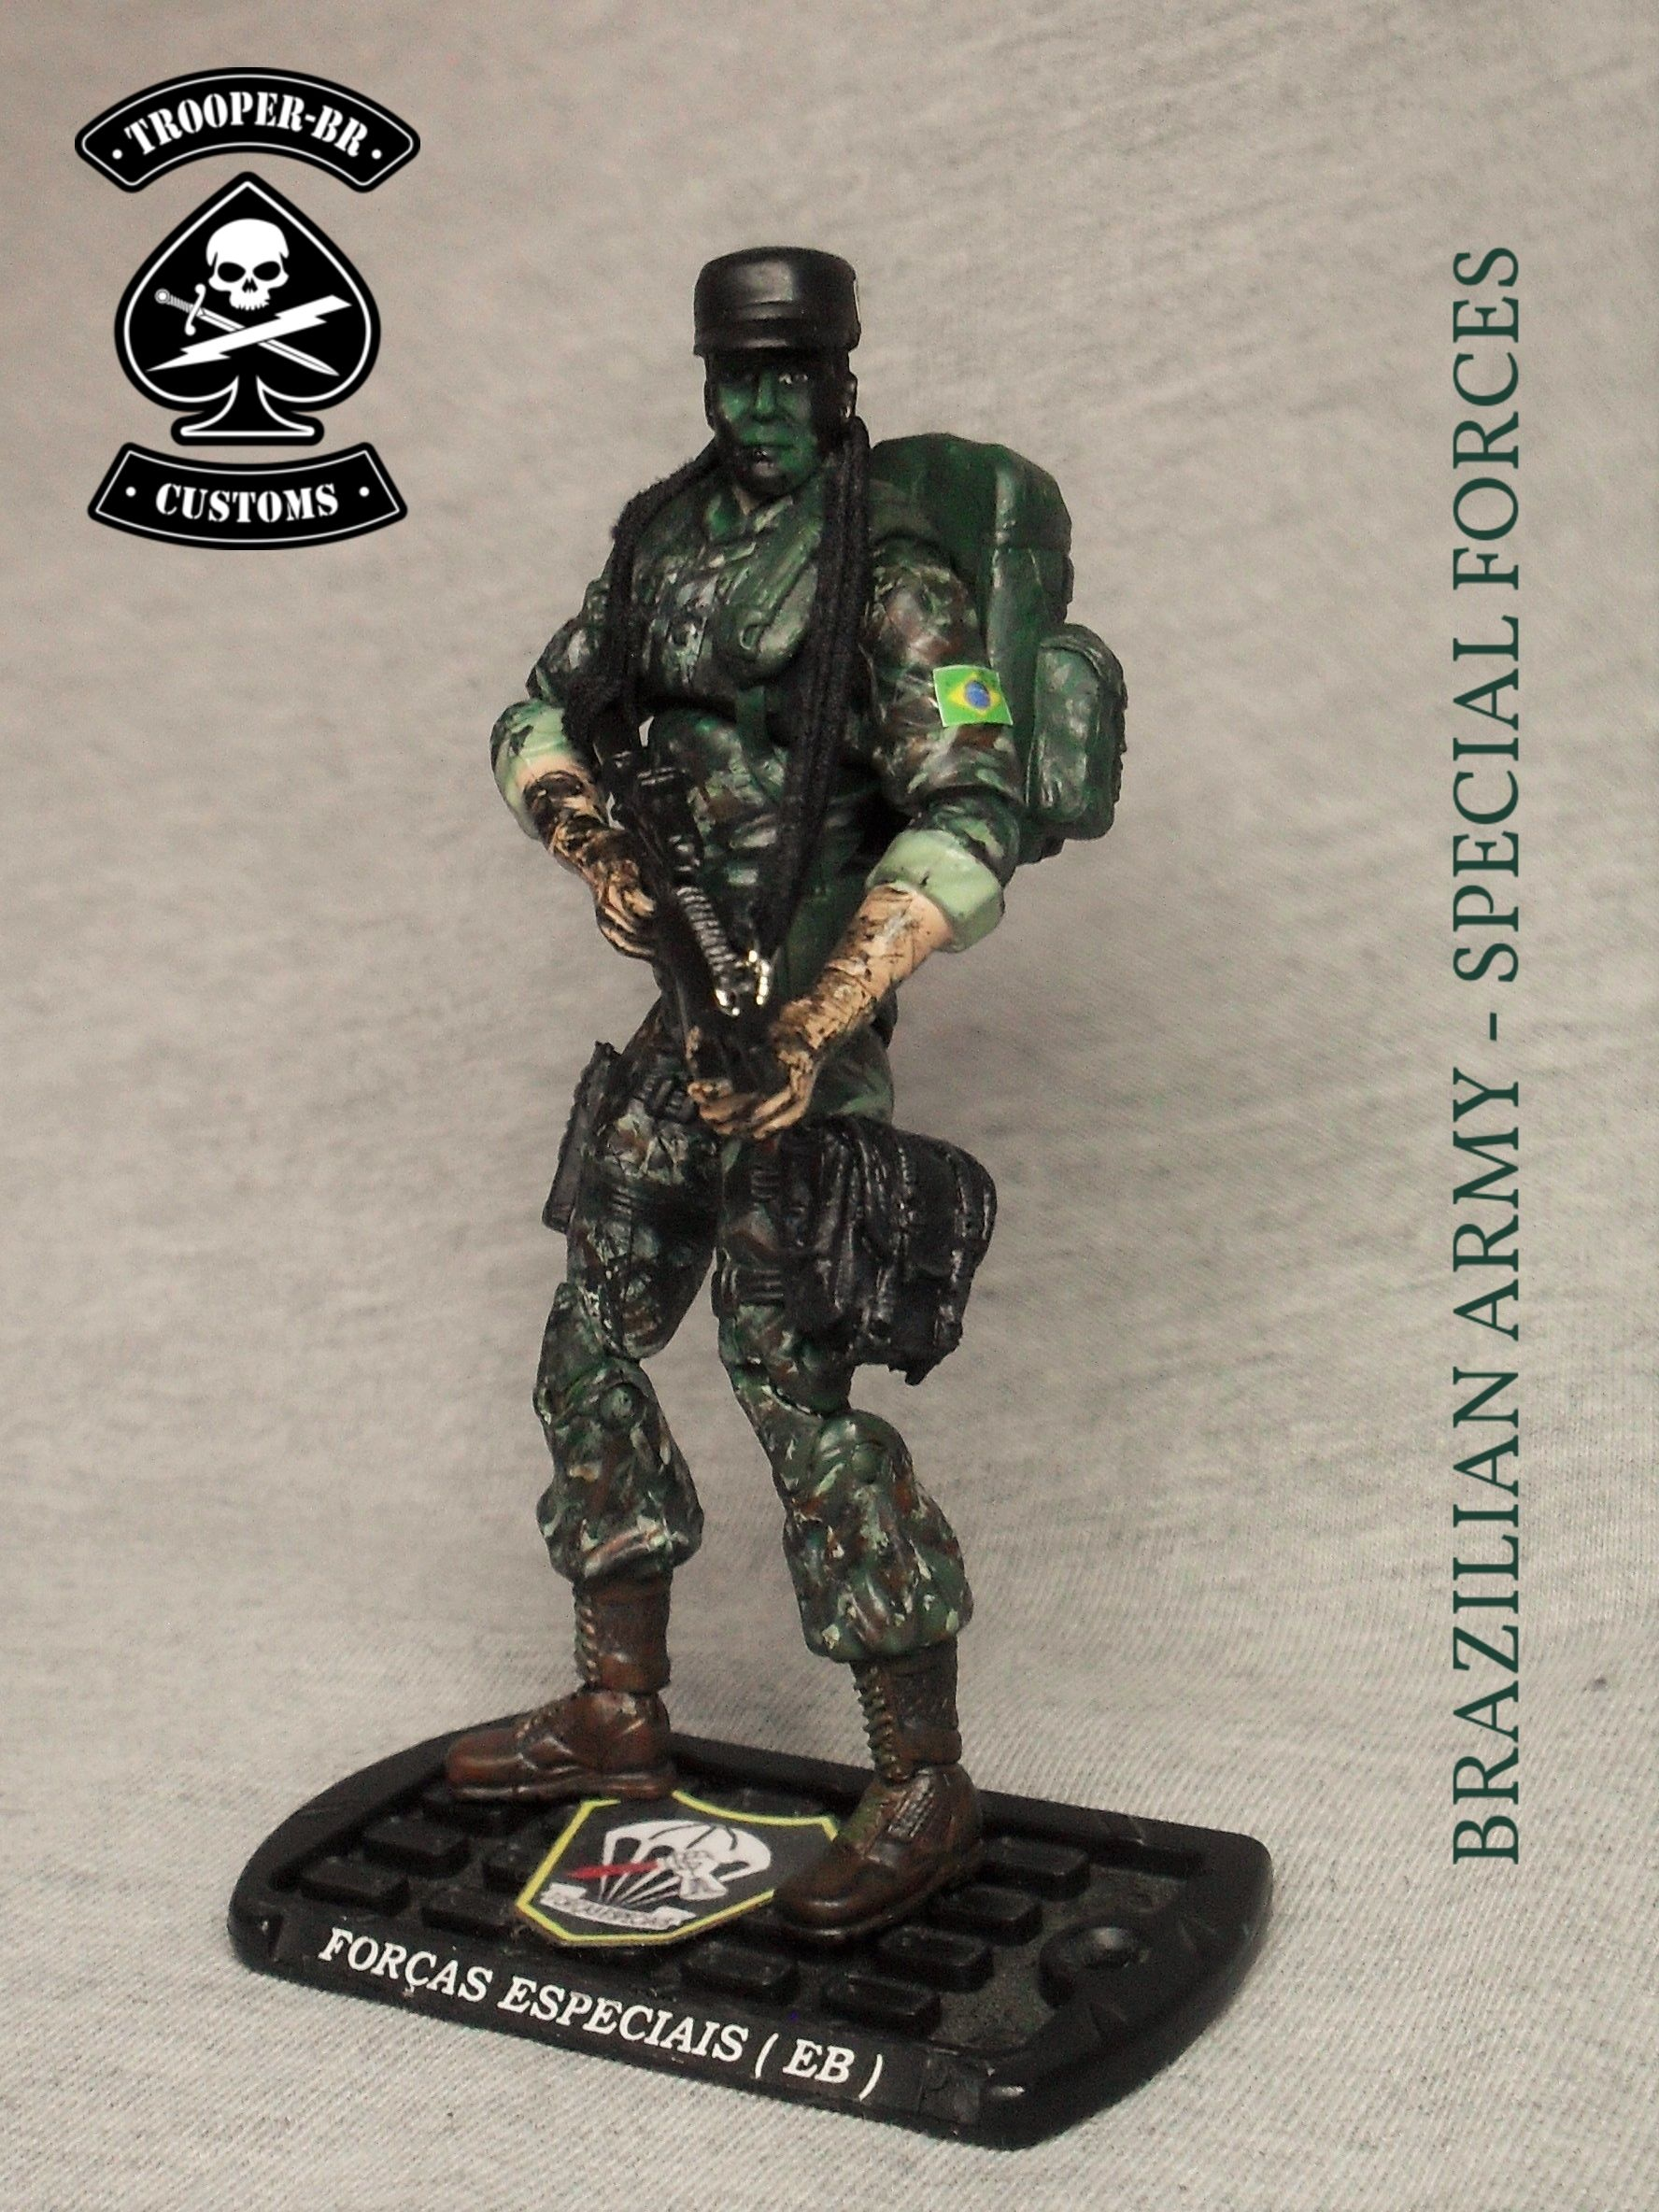 This is one more custom from Brazilian Army, comission of a former Special Forces officer, an improved version of my 1st version, made a few years ago. When I was a kid, I used to dream with brazilian Comandos em Ação (name given to Gi Joes here in Brazil), dressed in uniforms from brazilian armed forces. Unhappily, on that time, it wasn't possible. Nowadays I can make it real several times, everytime I customize a figure like this.